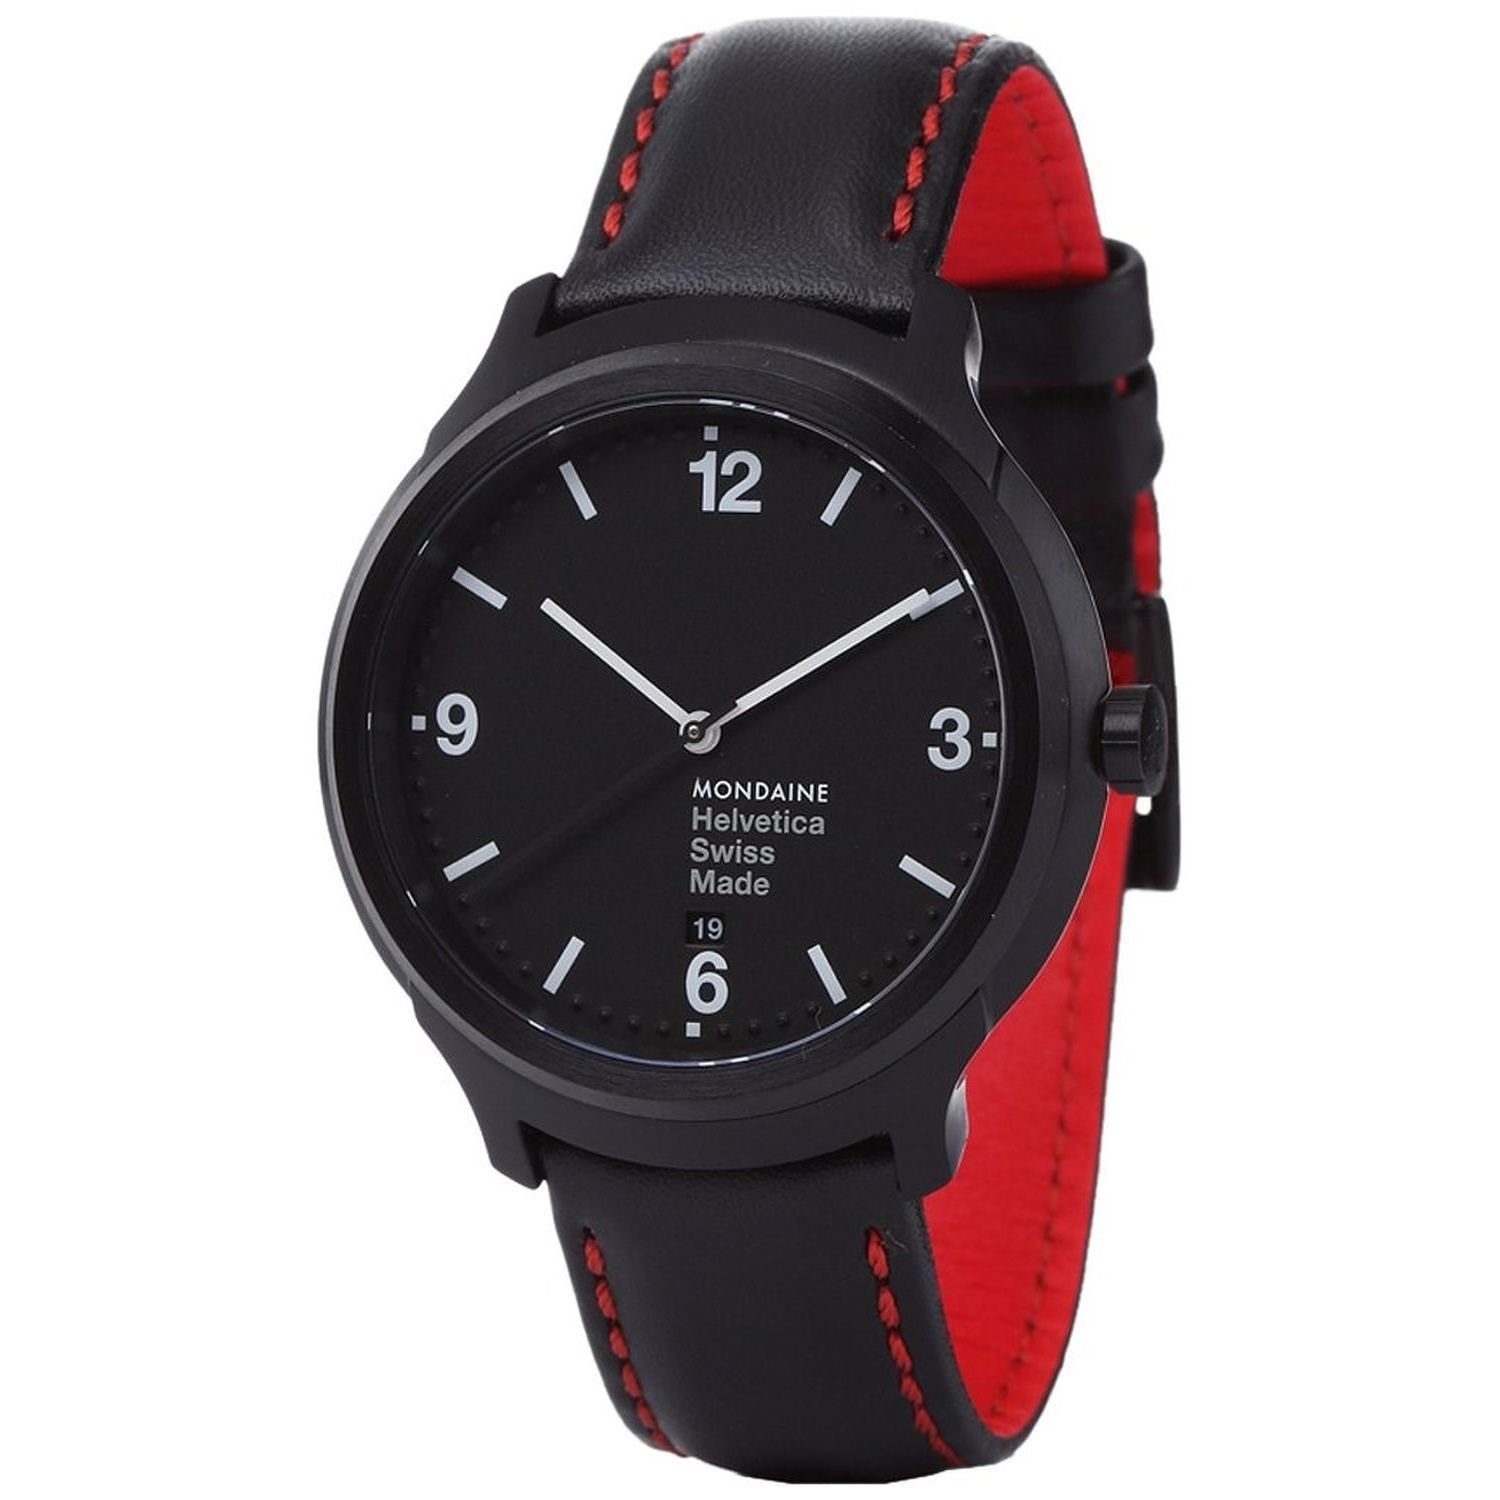 28027f2457690 Mondaine - Mondaine Men s MH1B1221LB  Helvetica No. 1 Bold  Black Leather  Watch - Walmart.com